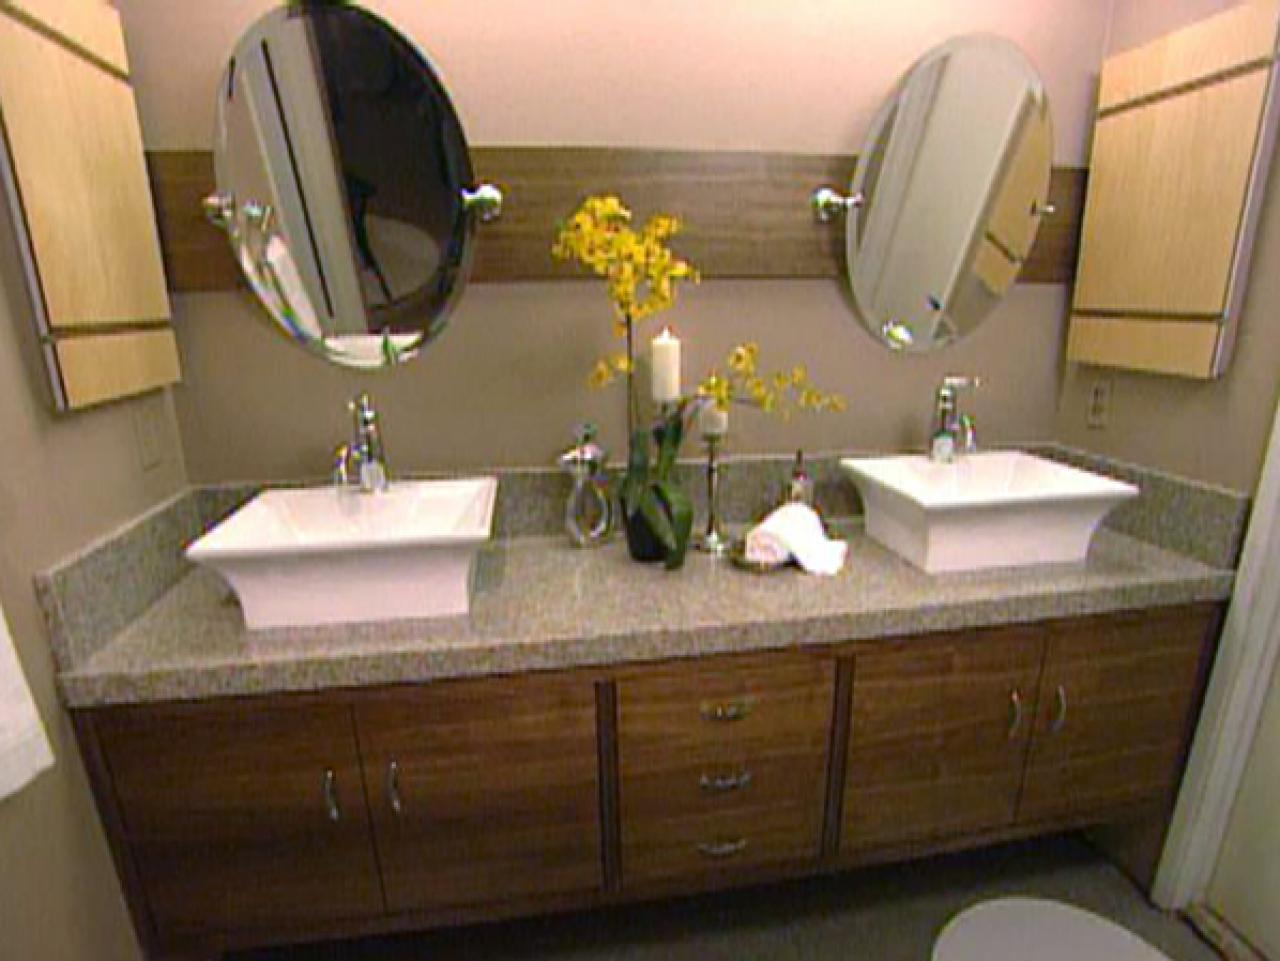 Cool How To Build A Master Bathroom Vanity | Hgtv in High Quality Master Bathroom Vanity